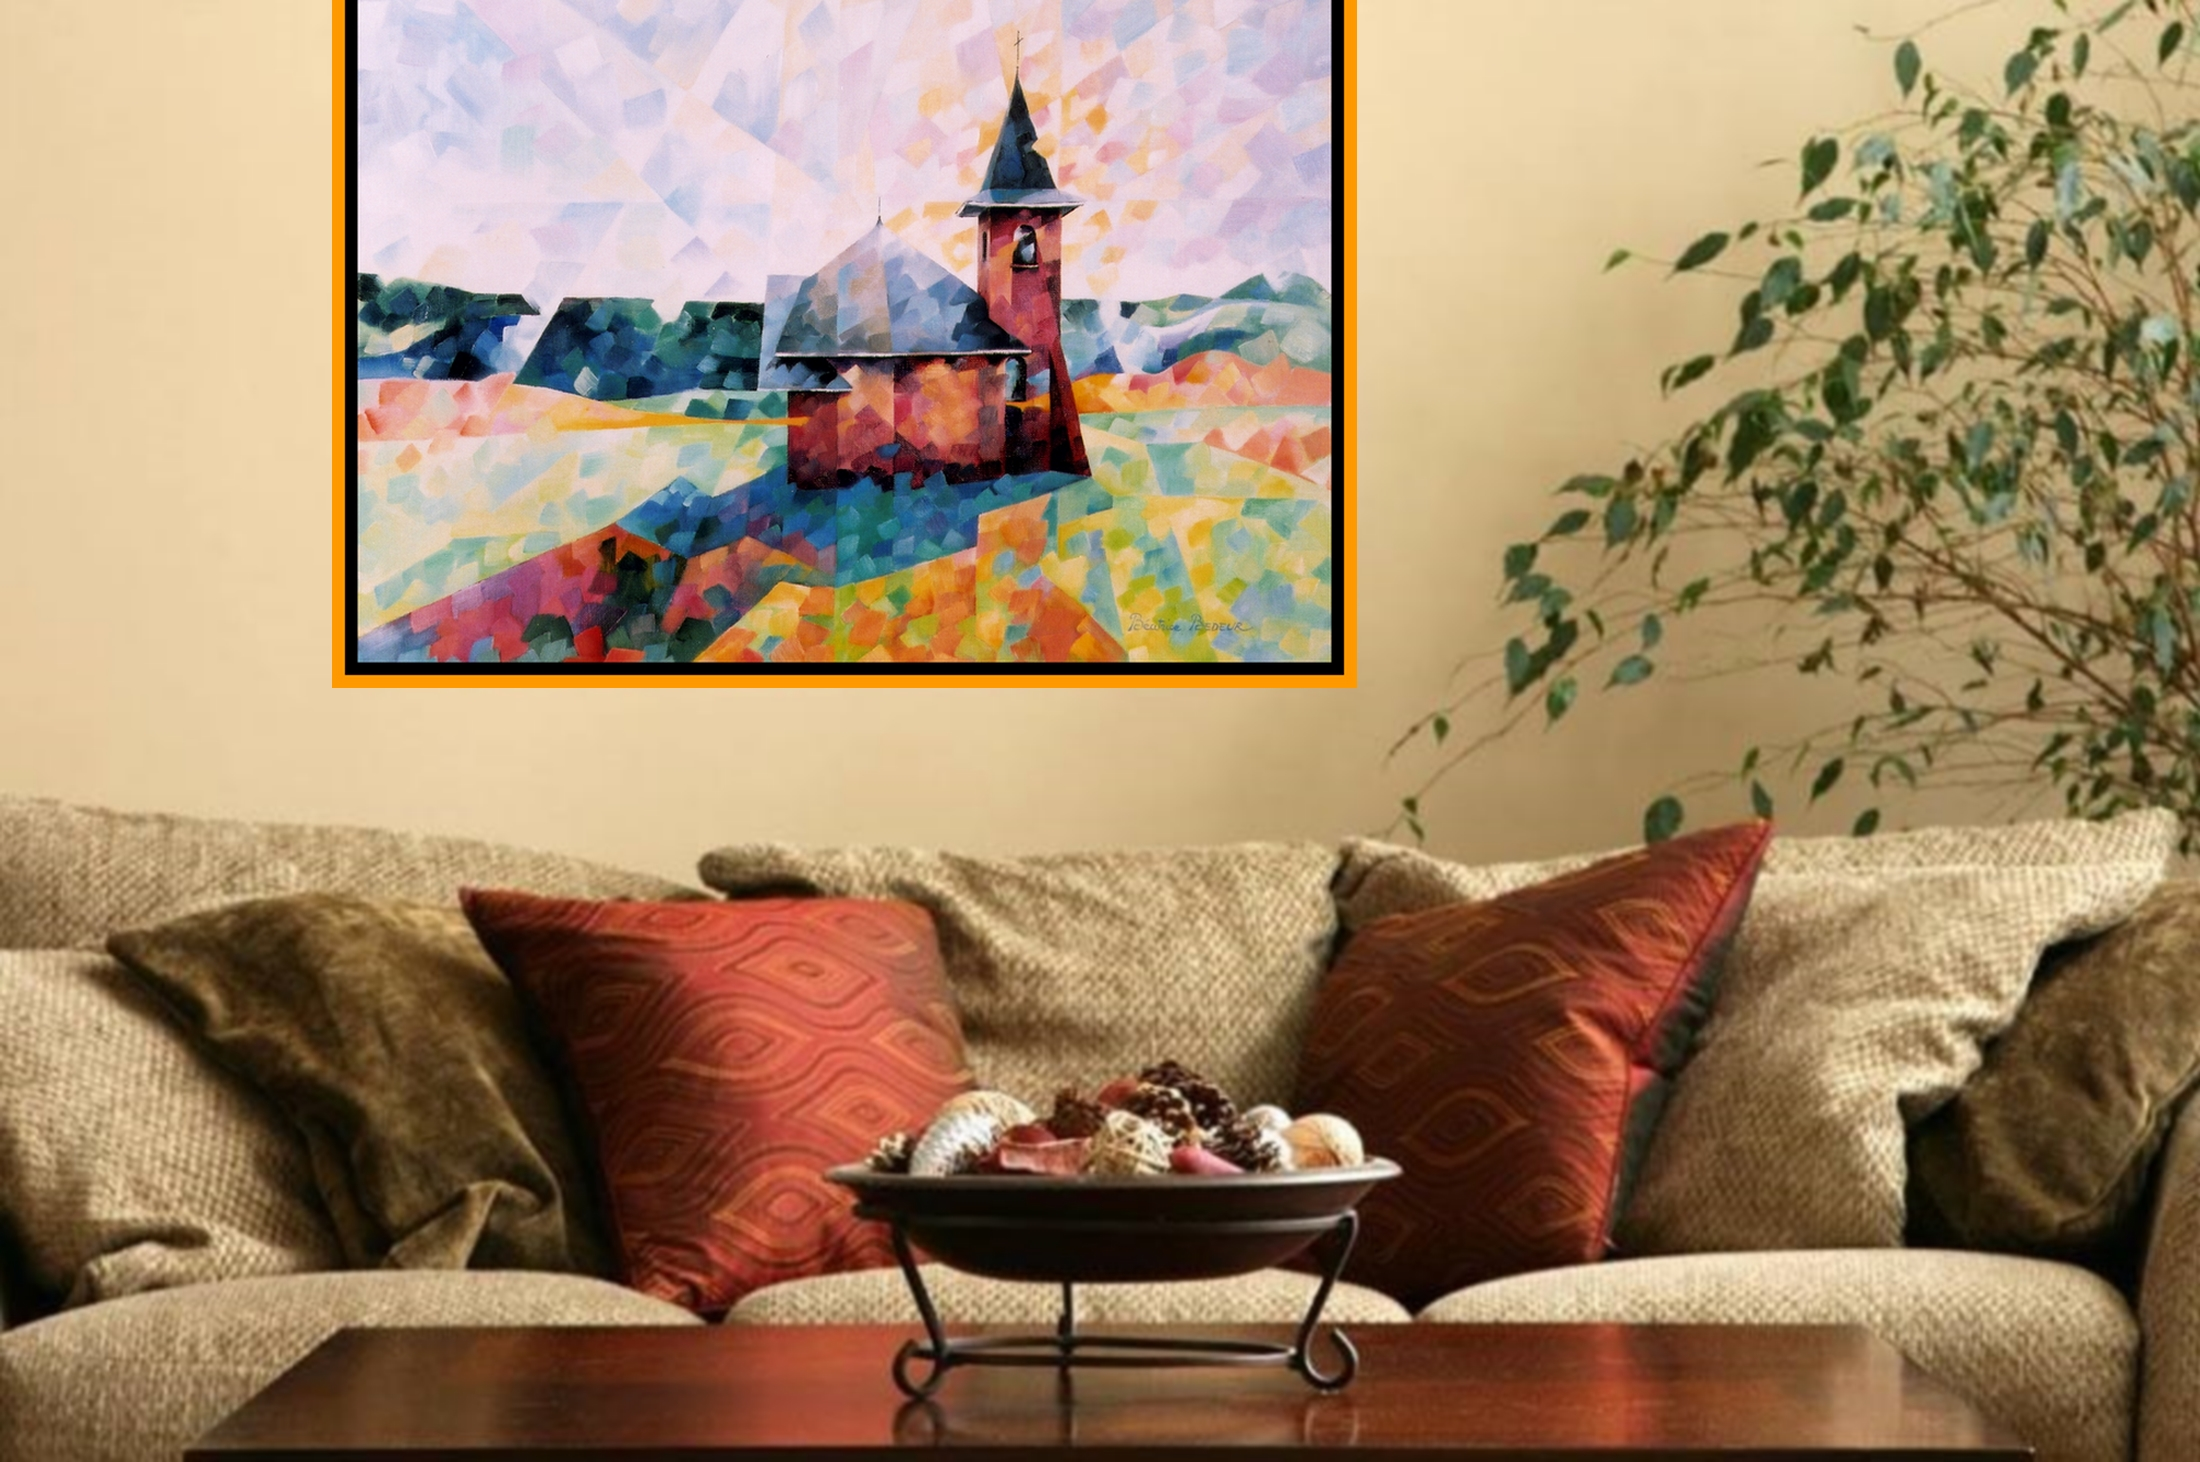 Chapelle de My artwork by Beatrice BEDEUR - art listed for sale on Artplode